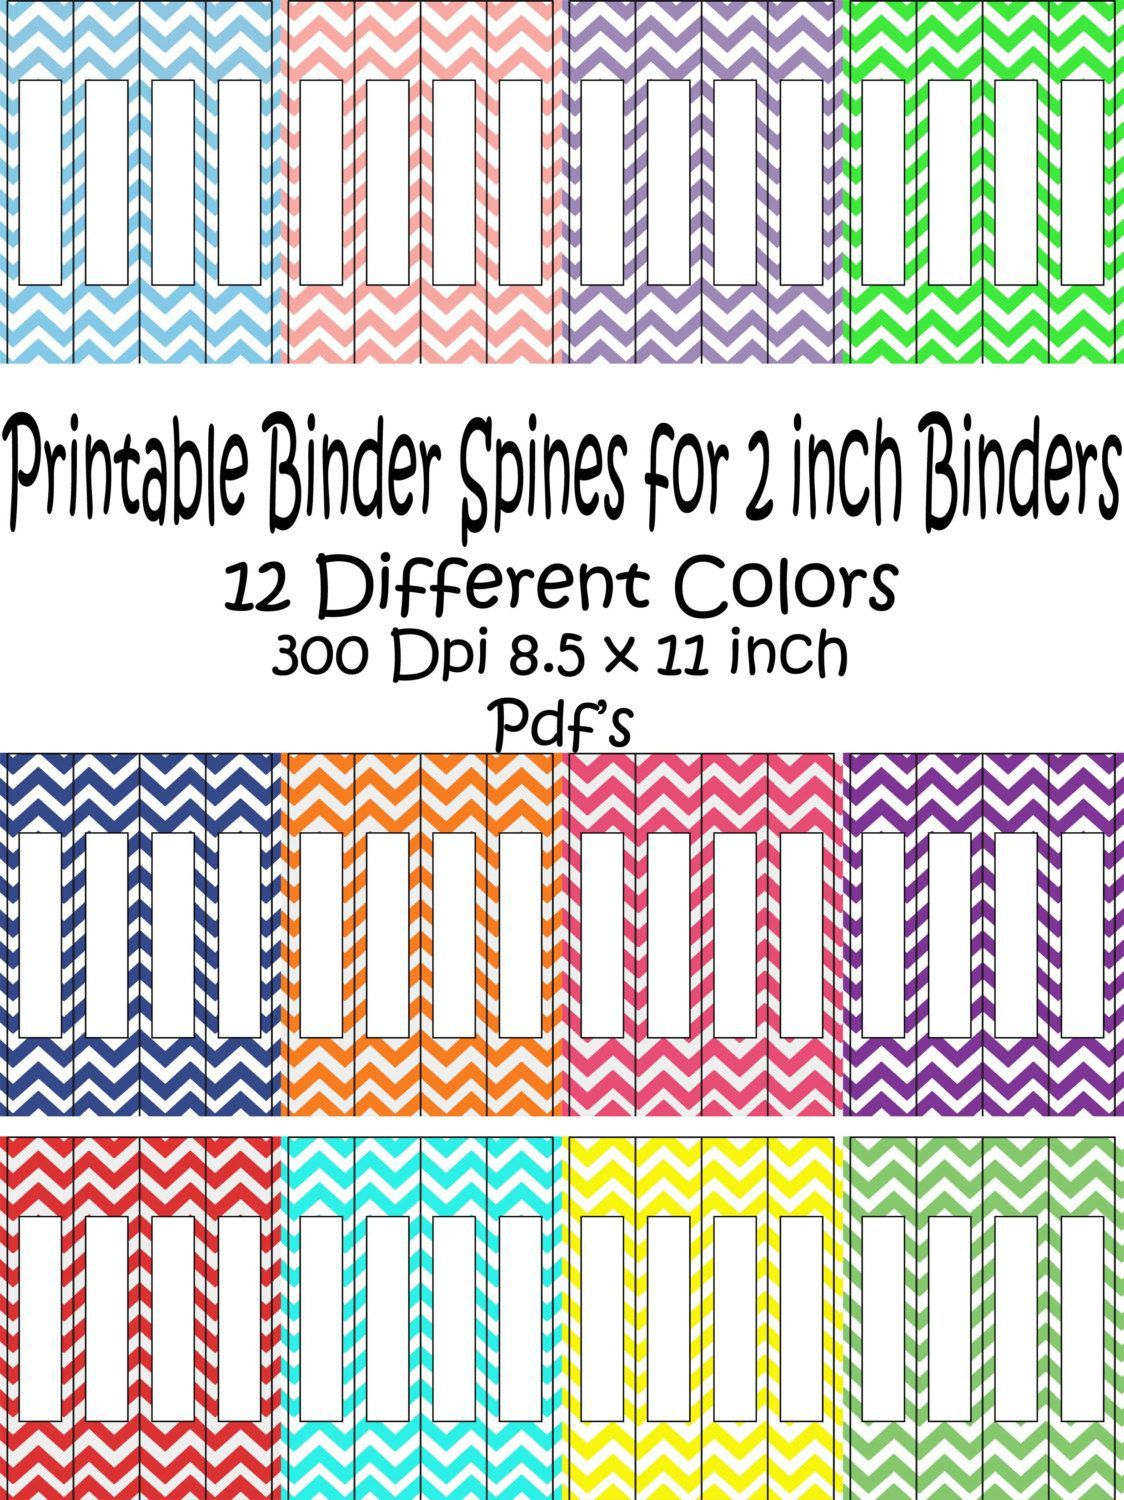 Printable Binder Spine Pack Size 2 Inch 12 Different Colors